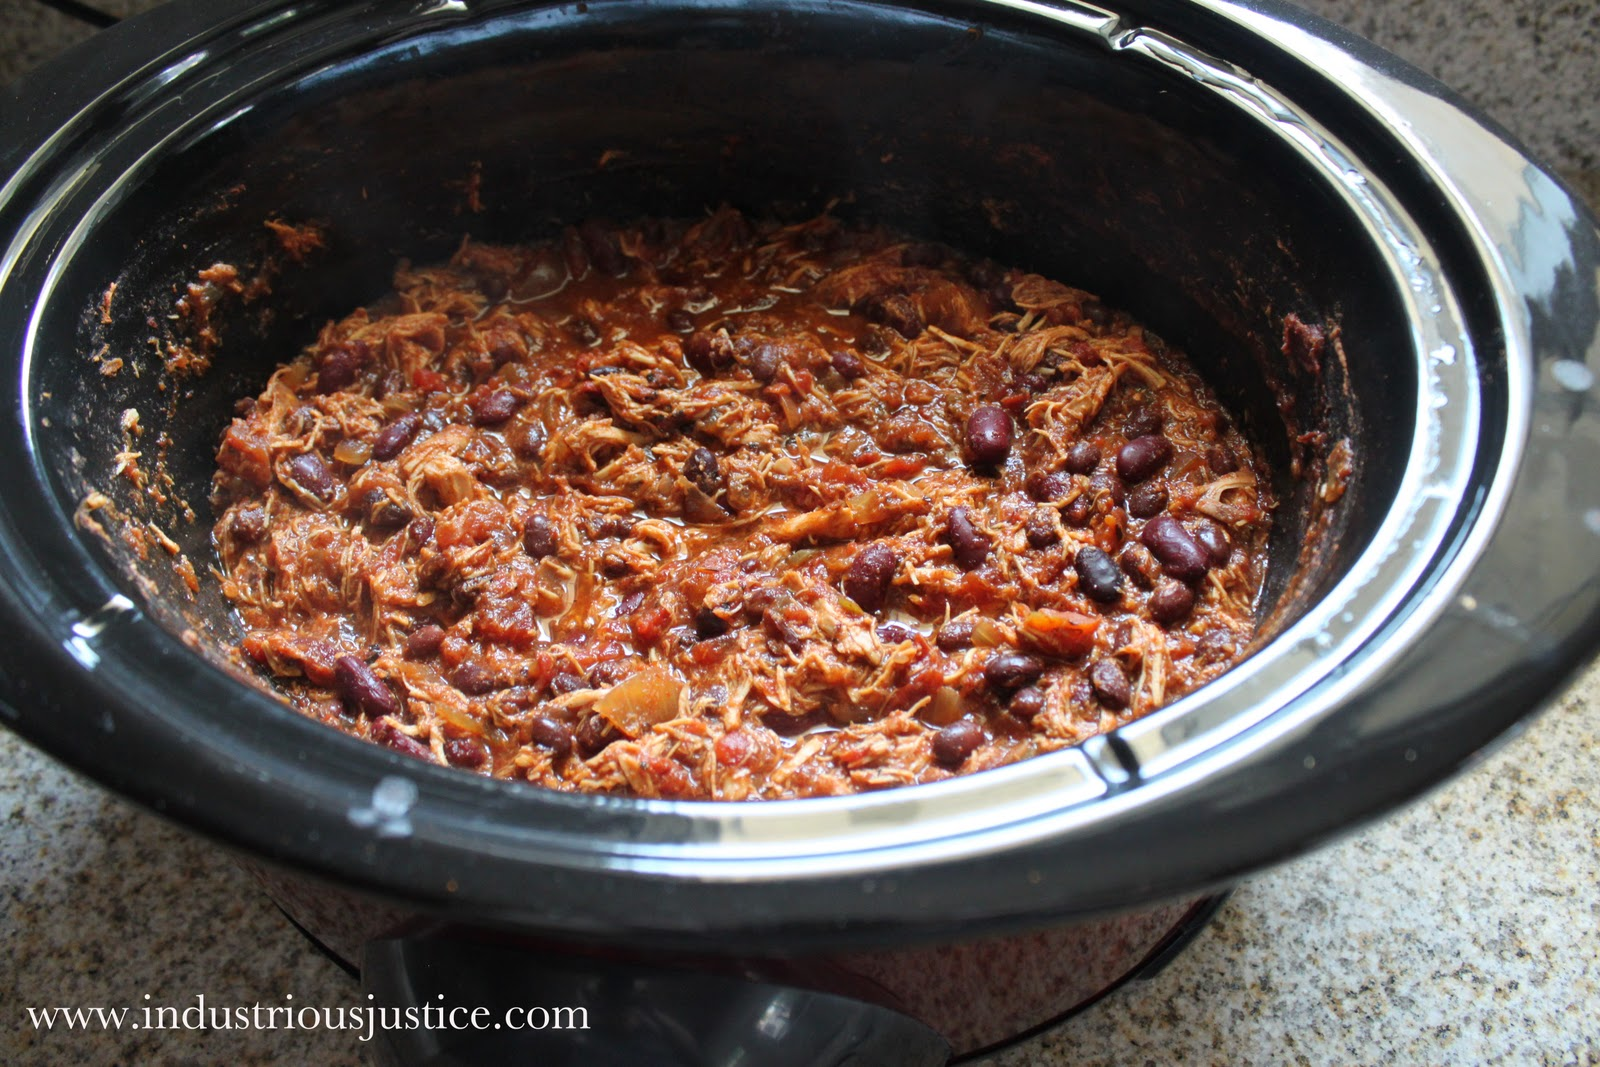 cooked chili chili with cheese ingredients 1 pound boneless skinless